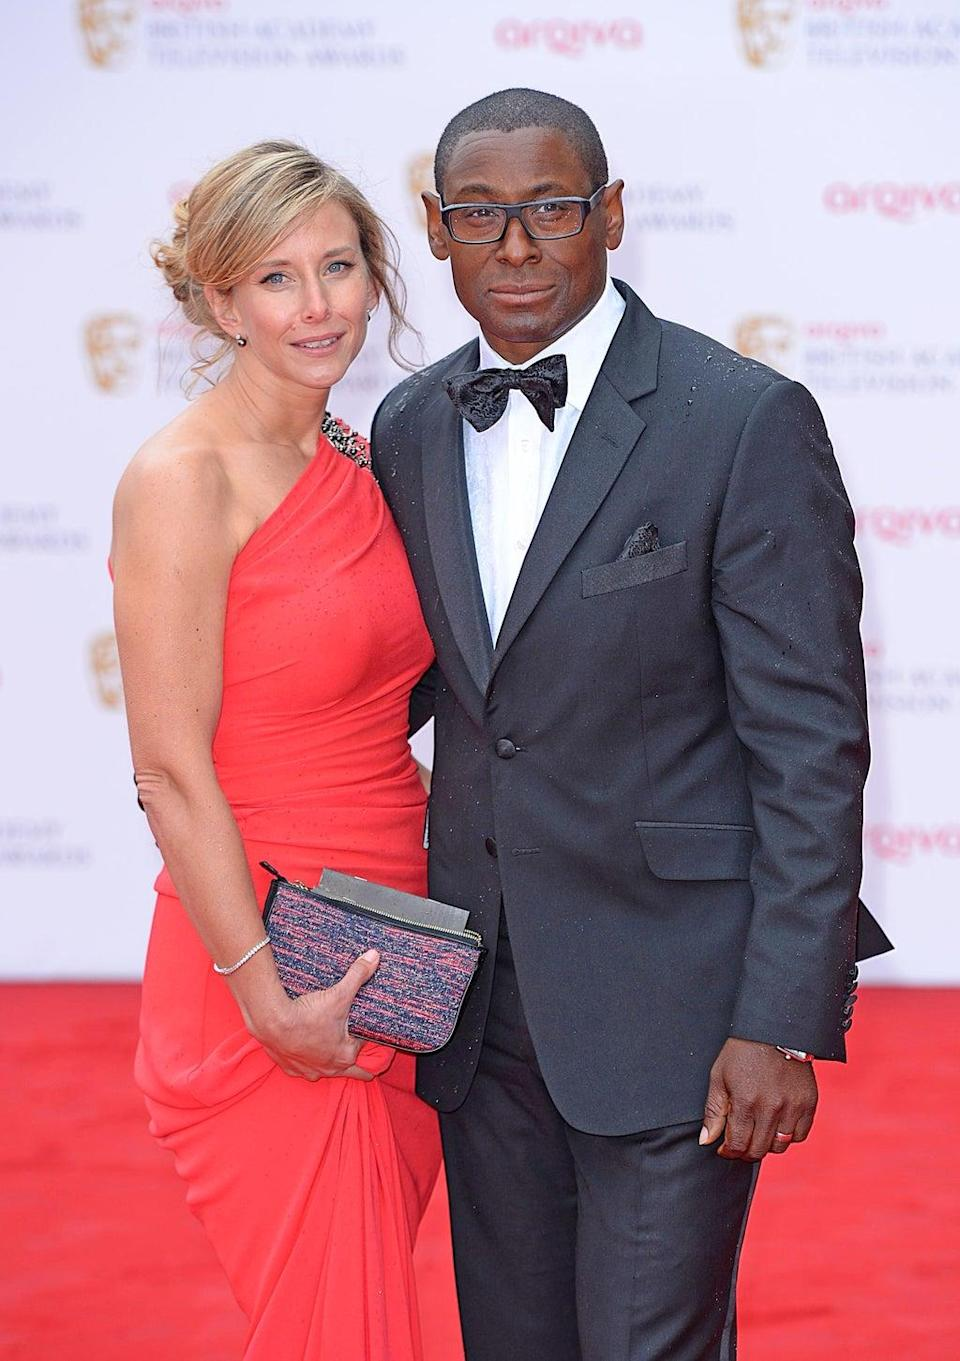 David Harewood and wife Kirsty Hands arriving for the 2013 Arqiva British Academy Television Awards at the Royal Festival Hall, London.